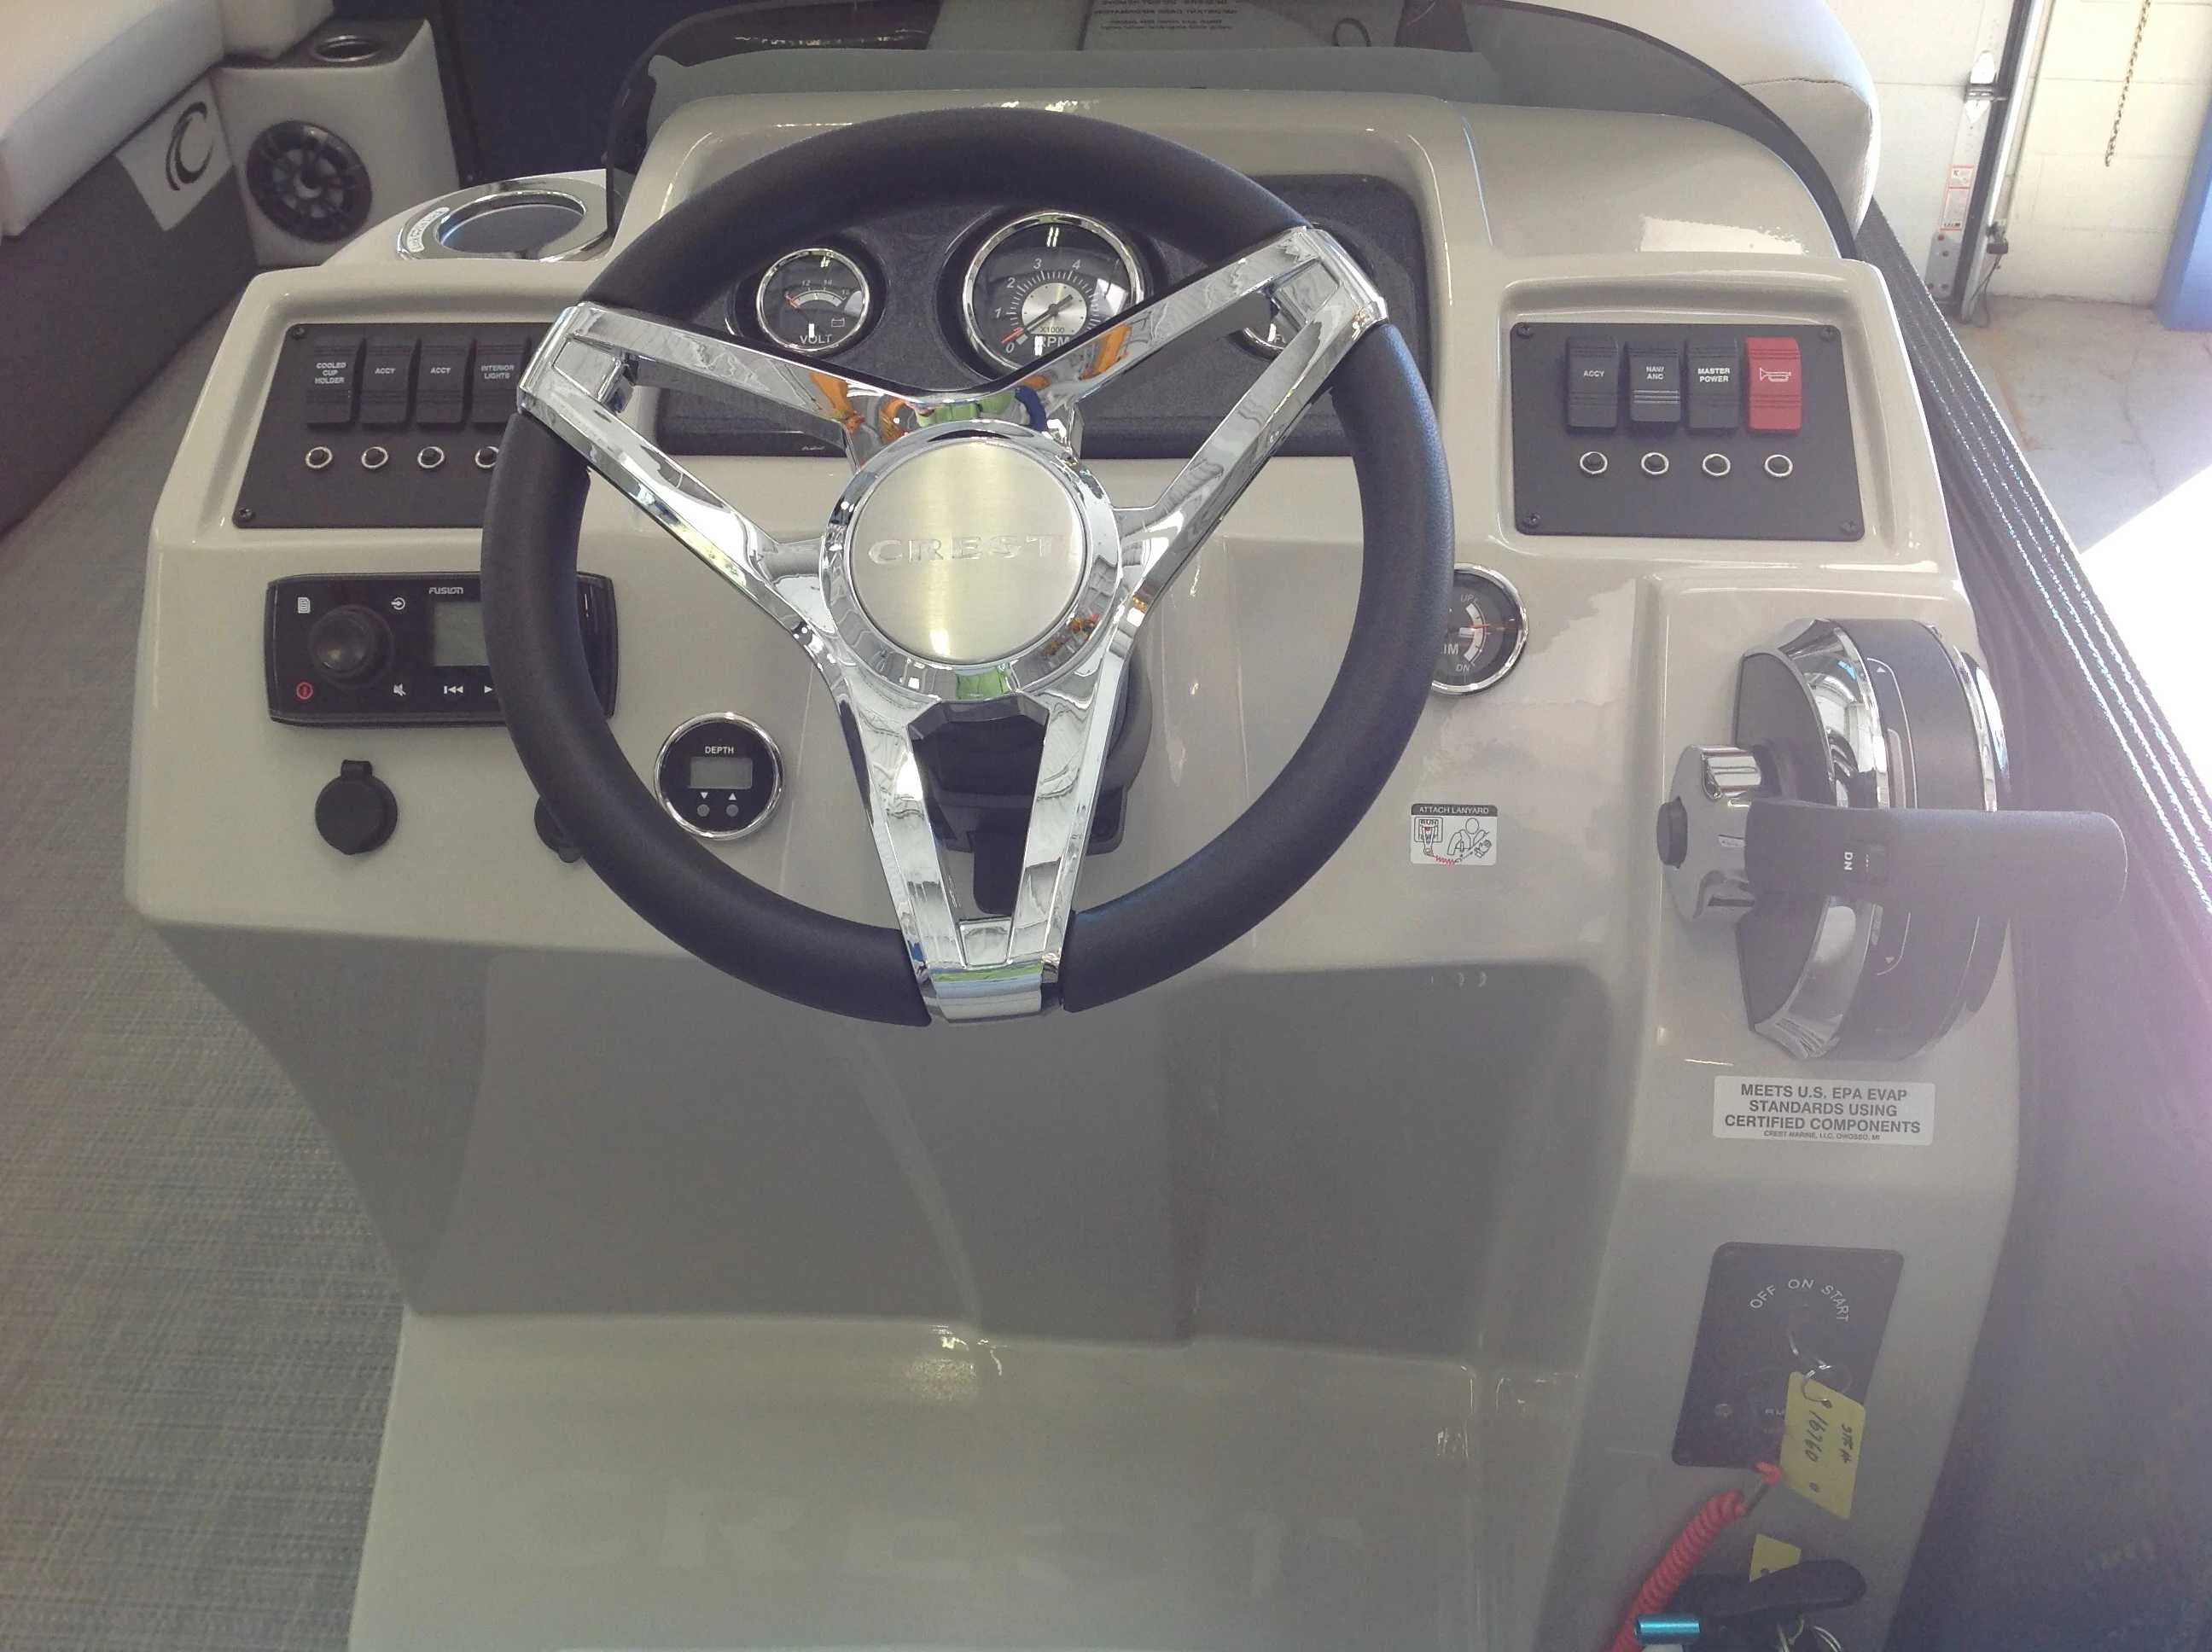 2021 Crest boat for sale, model of the boat is Cl Lx 220slc & Image # 10 of 15